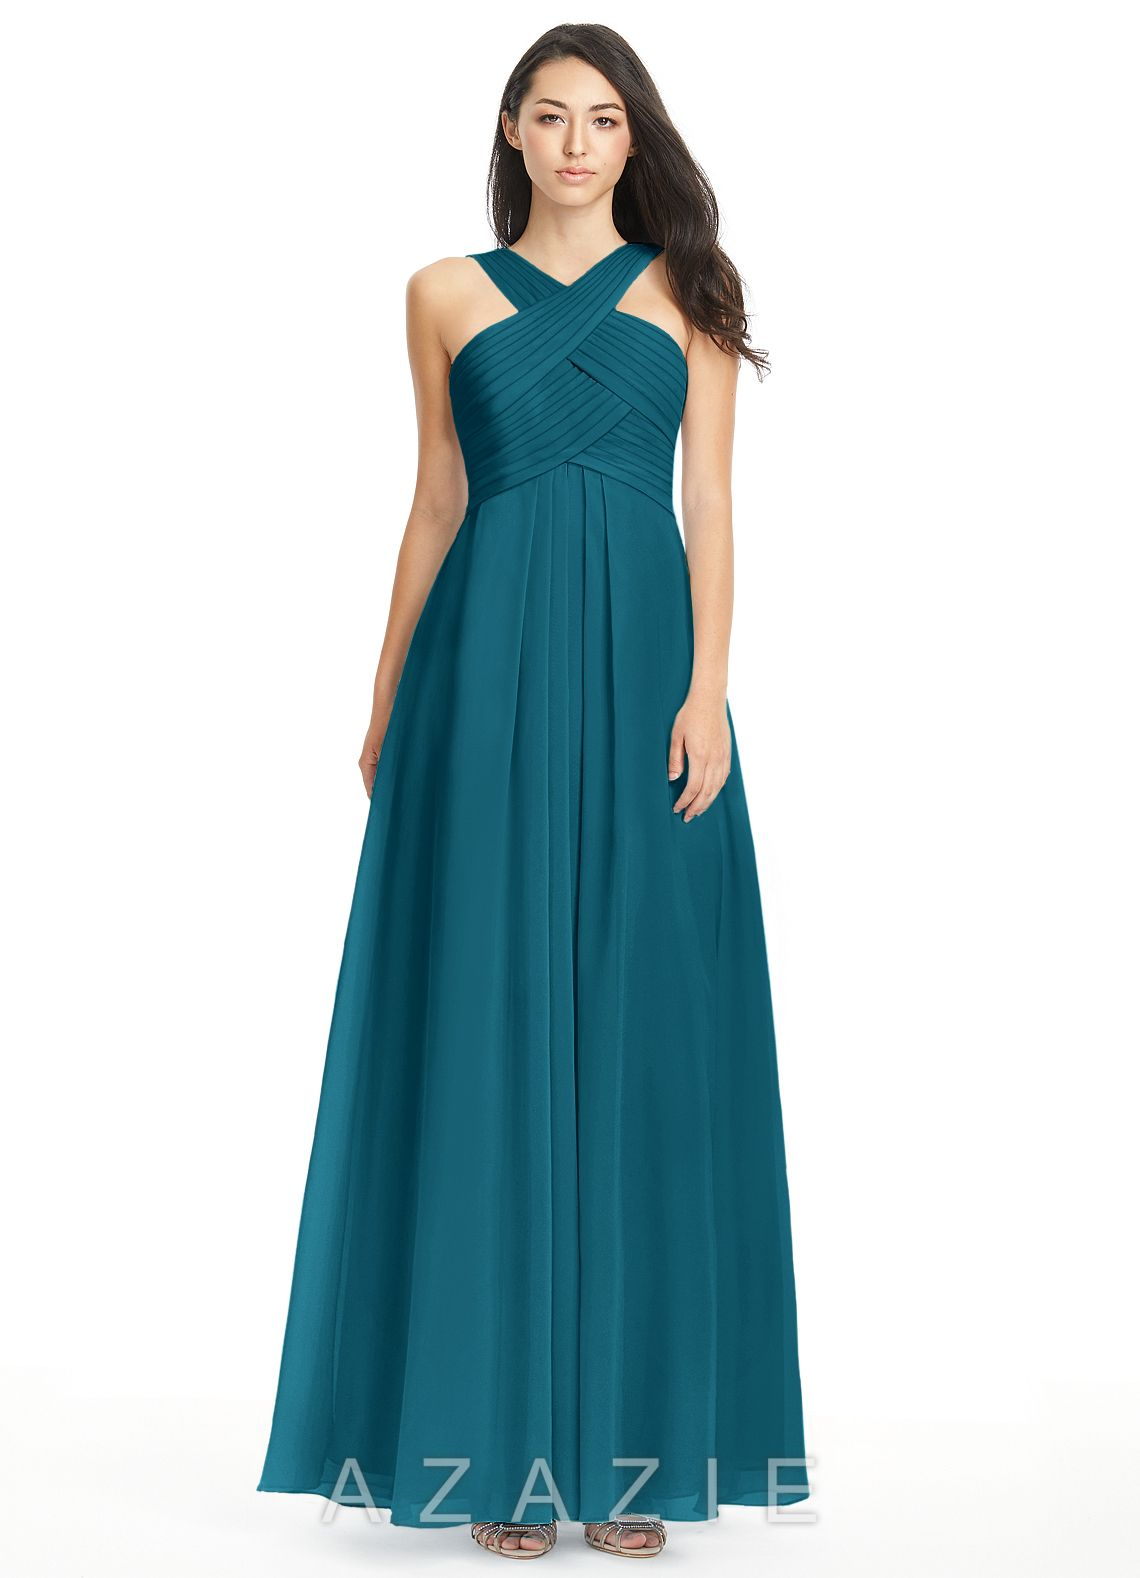 4067f393b4 Shop Azazie Bridesmaid Dress - Kaleigh in Chiffon. Find the perfect  made-to-order bridesmaid dresses for your bridal party in your favorite  color